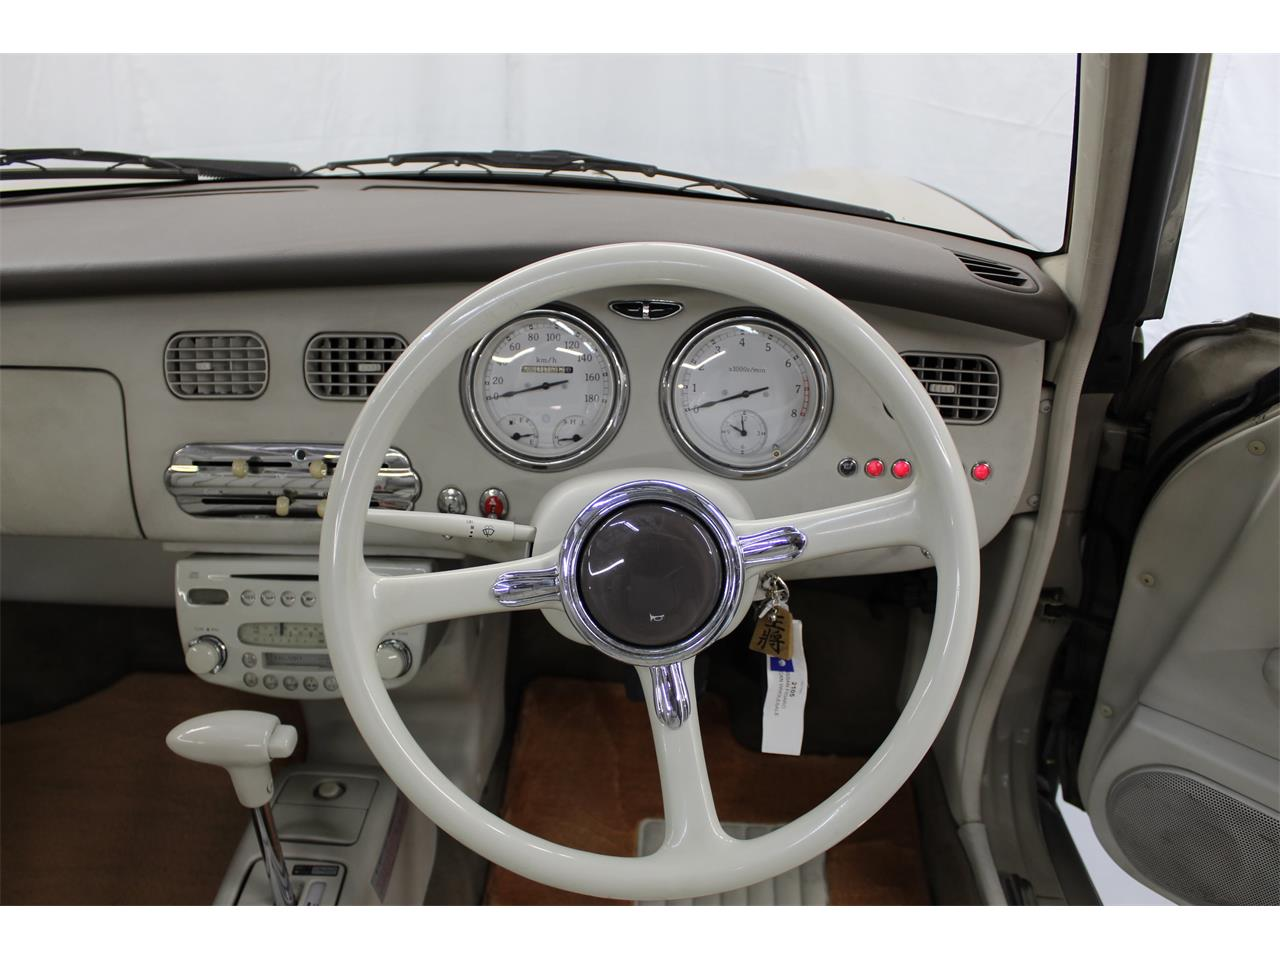 1991 Nissan Figaro for sale in Christiansburg, VA – photo 24